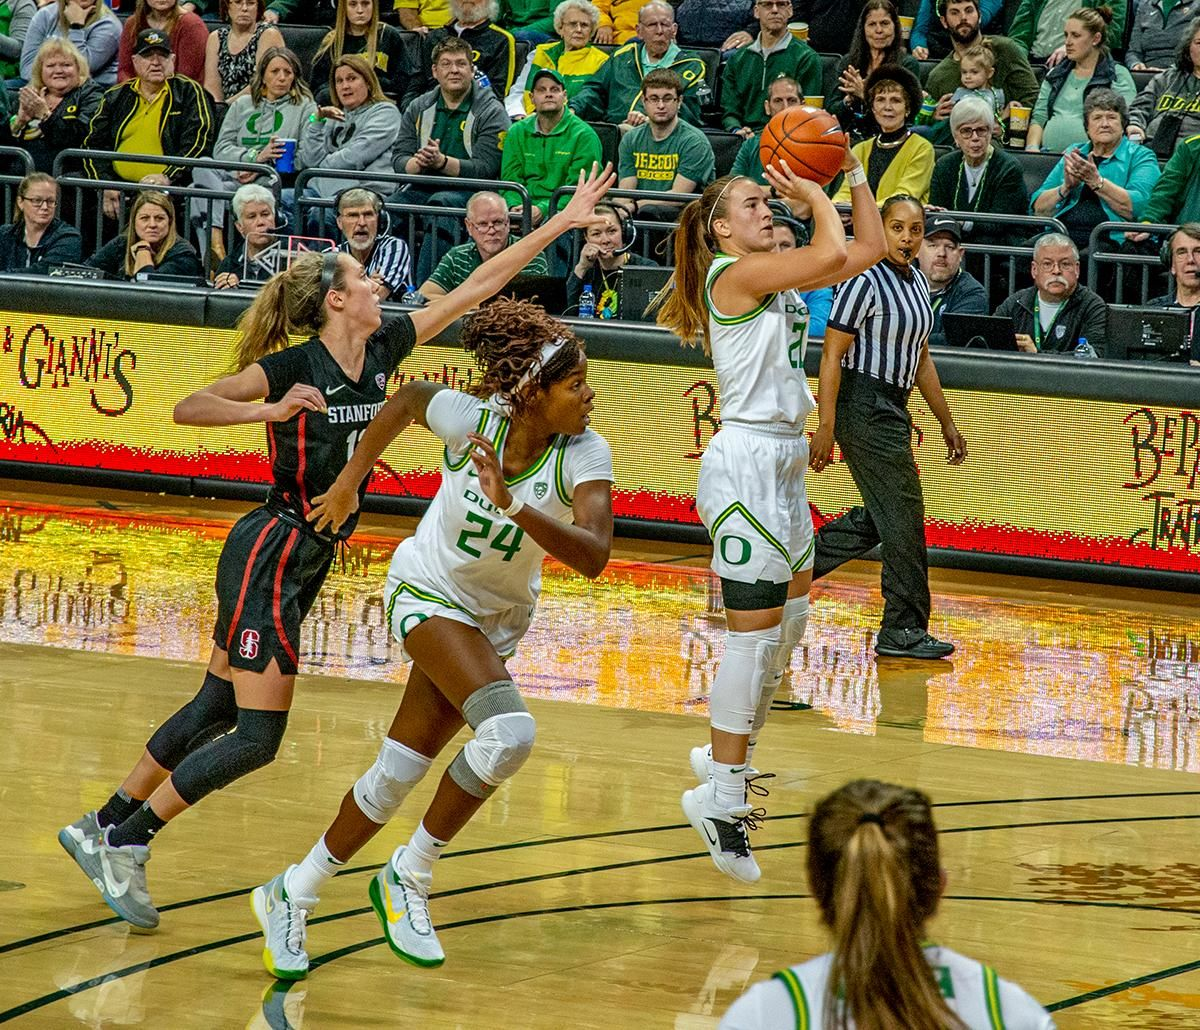 Oregon's point guard Sabrina Ionescu, #20, drains mid-range jumper to become the all-time leading scorer for the University of Oregon women's basketball program. The #6 University of Oregon Ducks women's basketball team defeated #3 Stanford Cardinal 87-55 in front of a sold out crowd of 12, 218 fans in Matthew Knight Arena. Sabrina Ionescu broke the all-time Oregon scoring record of 2,253 and ended the game with 37 points, 11 rebounds, another double-double. Satou Sabally added 18 points and 11 rebounds, also a double-double. Ruthy Hebard put up 11 points with 5 rebounds, and Minyon Moore added 10 points 3 rebounds. The Ducks next face off against Cal on Sunday, January 19, at 2 pm in Matthew Knight Arena. Photo by Jeffrey Price